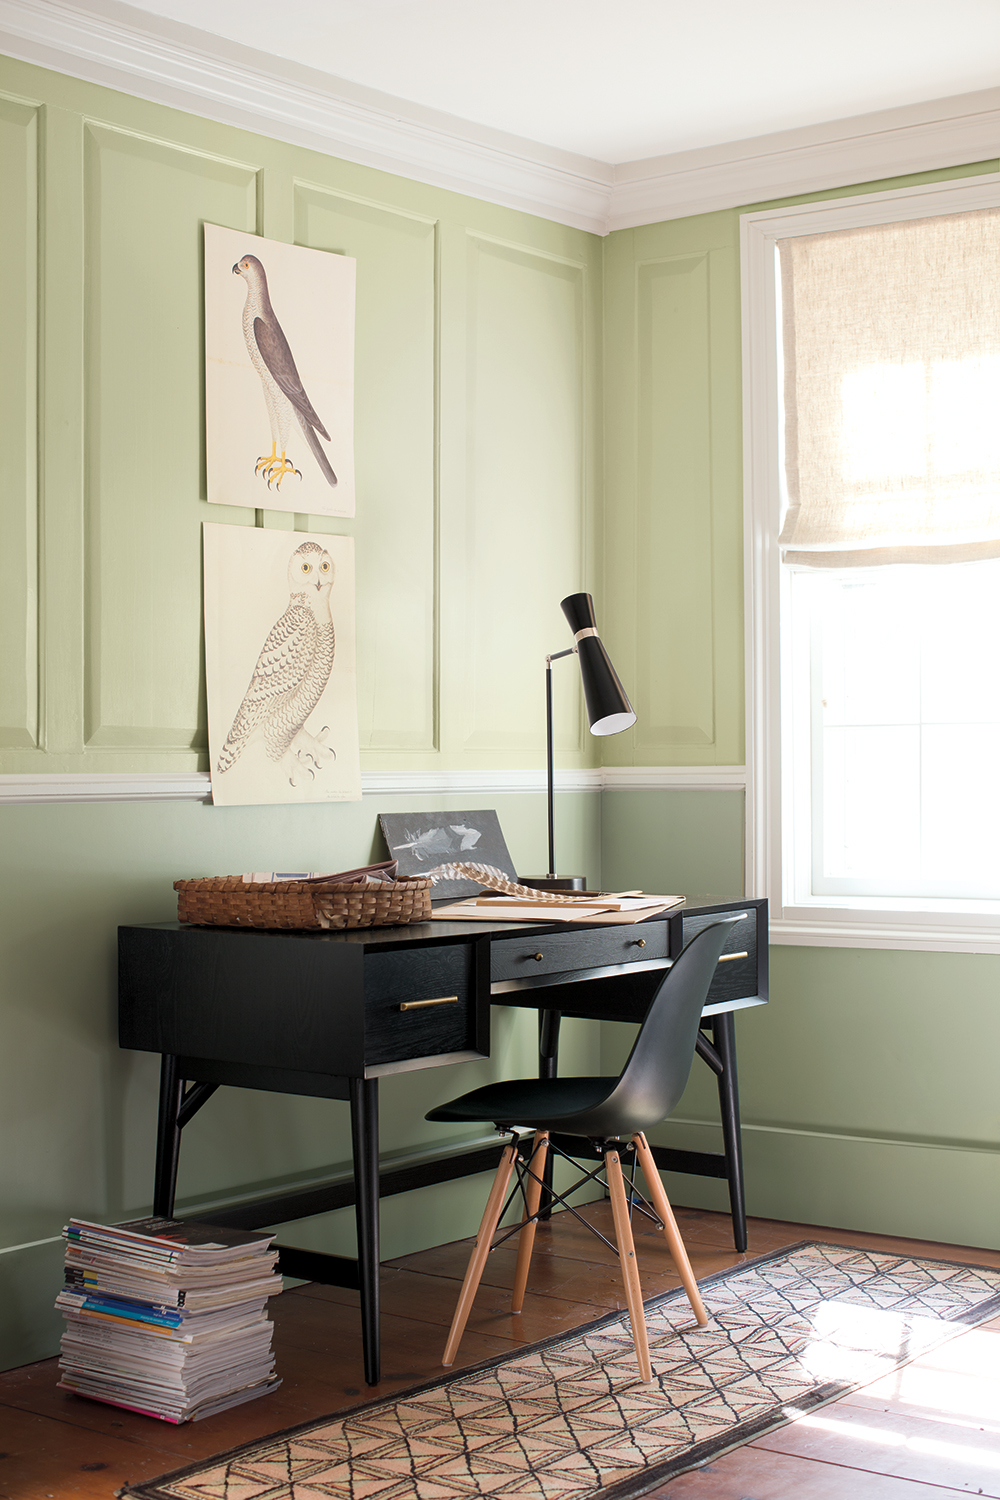 A lick of paint is guaranteed to brighten up your work space! - The two shades of green here from Benjamin Moore are refreshing and contrast perfectly against this stylish modern black desk!Image via Benjamin Moore Paint